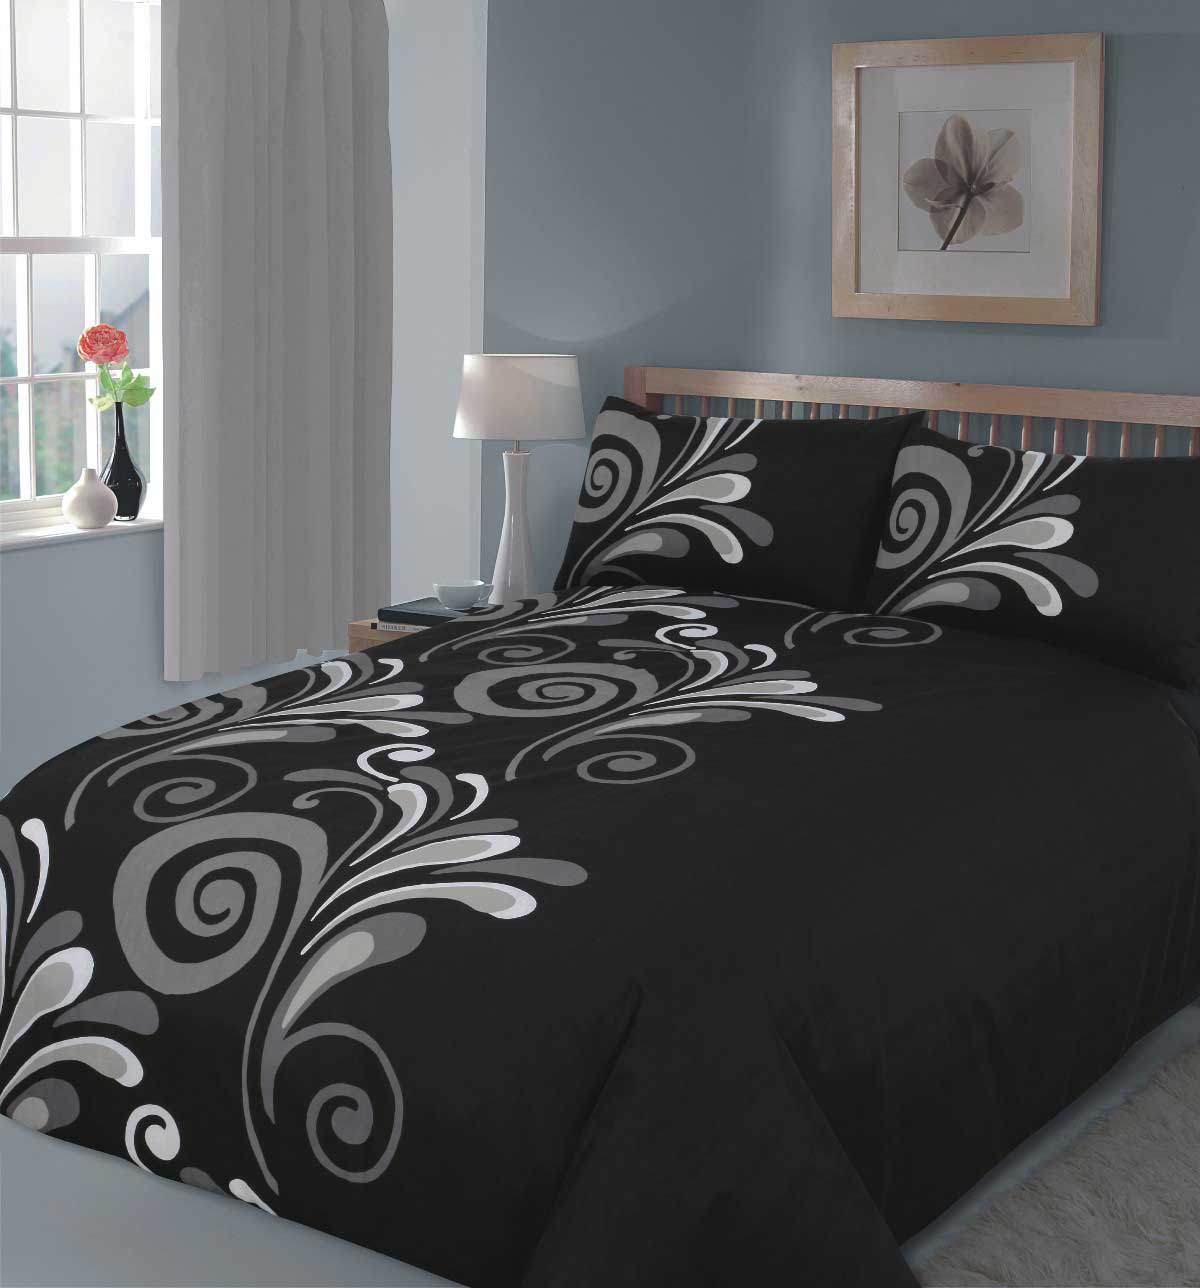 Unique bed sheets - Cool Comforter Sets Homesfeed Black Cool Comforter Sets For Bedding